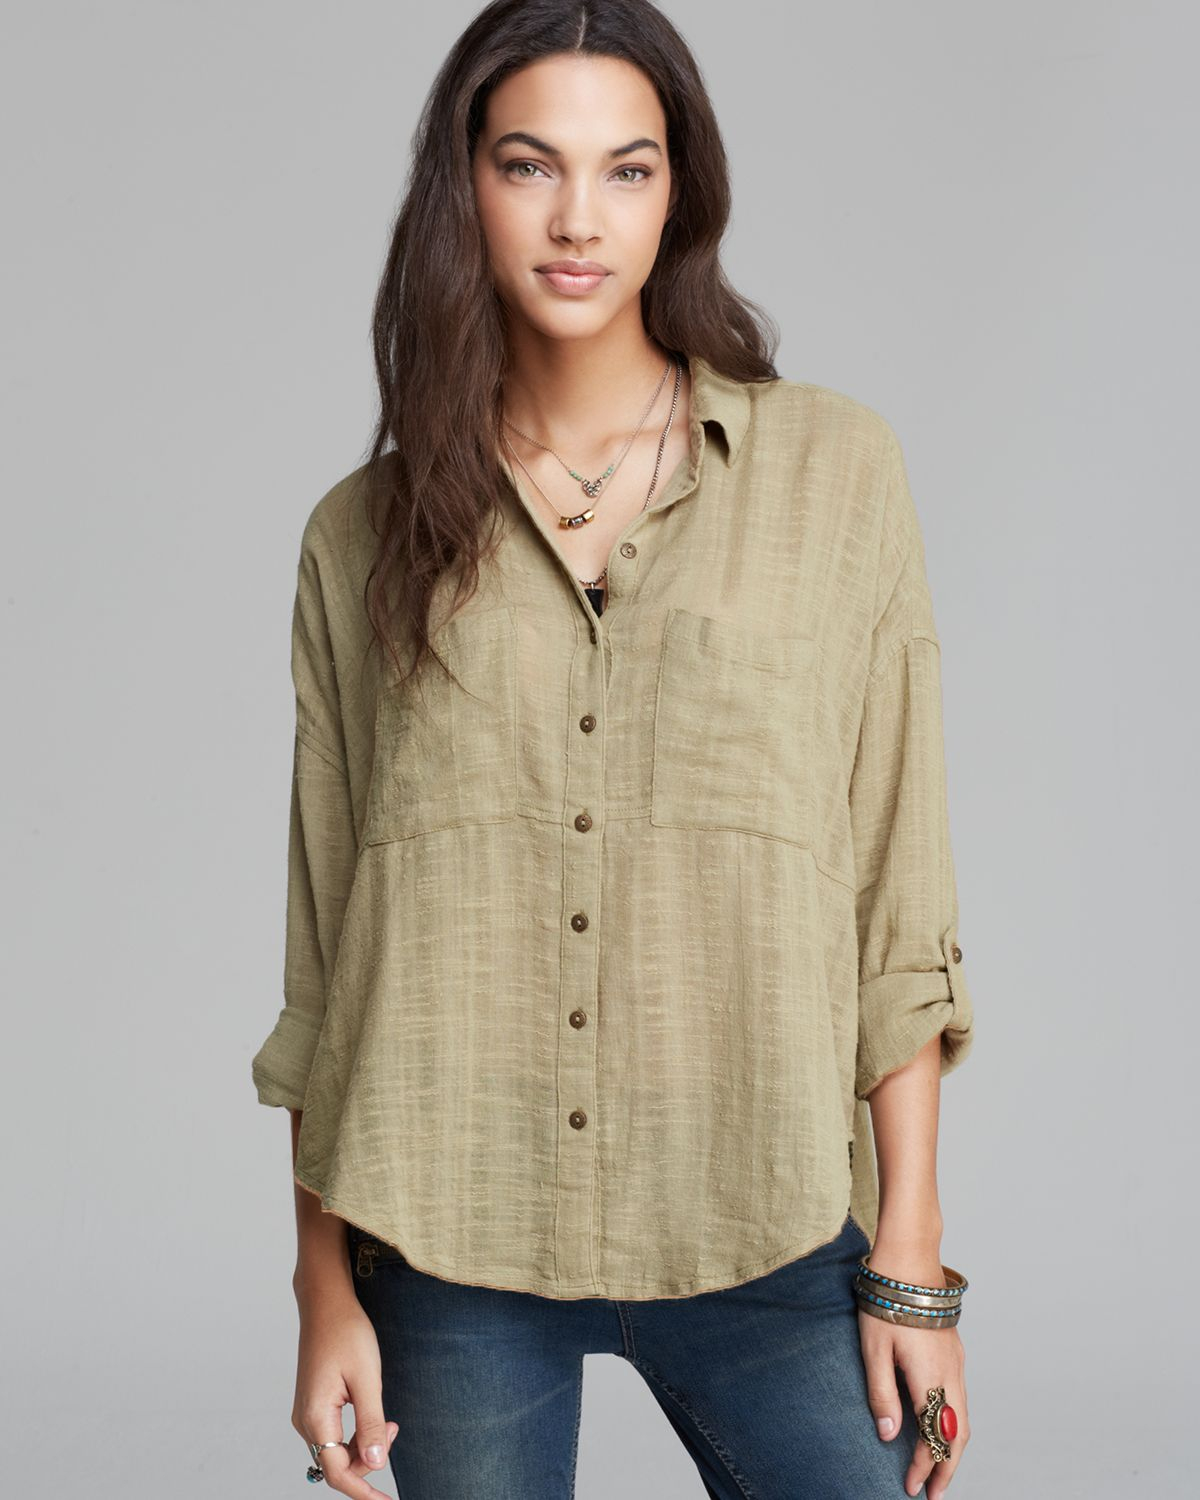 c29c8eca0 Free People Shirt Shibori Siren Button Down in Green - Lyst